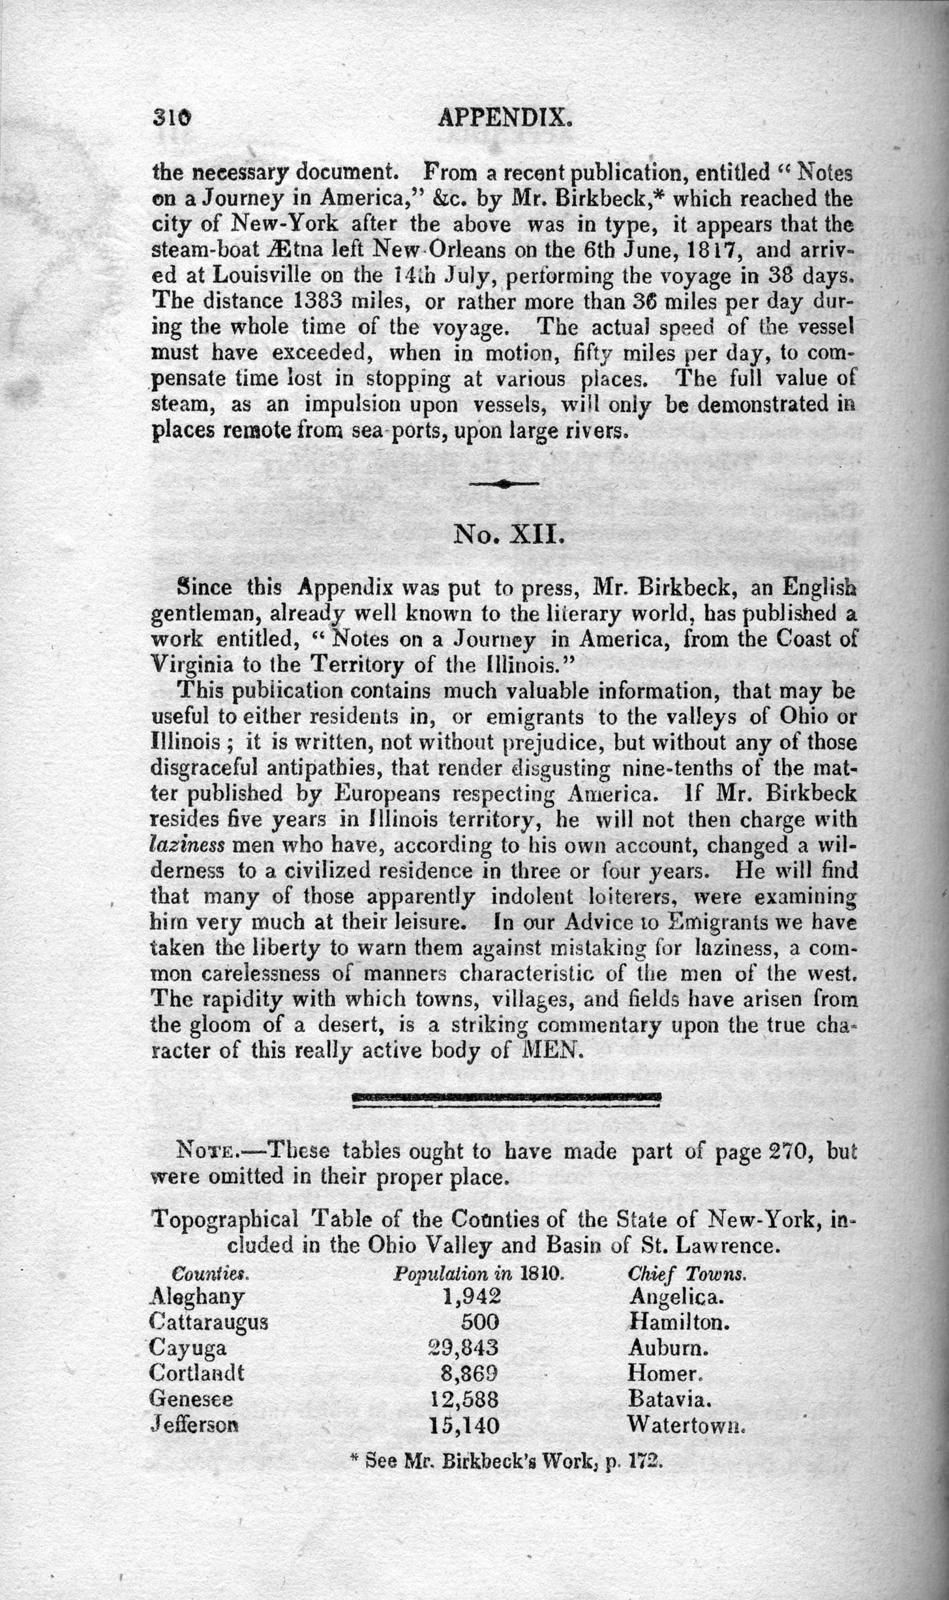 The emigrant's guide to the western and southwestern states and territories : comprising a geographical and statistical description of the states ; Louisiana, Mississippi, Tennessee, Kentucky, and Ohio ; the territories of Alabama, Missouri, and Michigan ; and the western parts of Virginia, Pennsylvania, and New-York ; with a complete list of the road and river routes, west of the Allegheny Mountains, and the connecting roads from New-York, Philadelphia, and Washington City, to New-Orleans, St. Louis, and Pittsburg ; The whole comprising a more comprehensive account of the soil, productions, climate, and present state of improvement of the regions described, than any work hitherto published; accompanied by a map of the United States, including Louisiana, projected and engraved expressly for this work